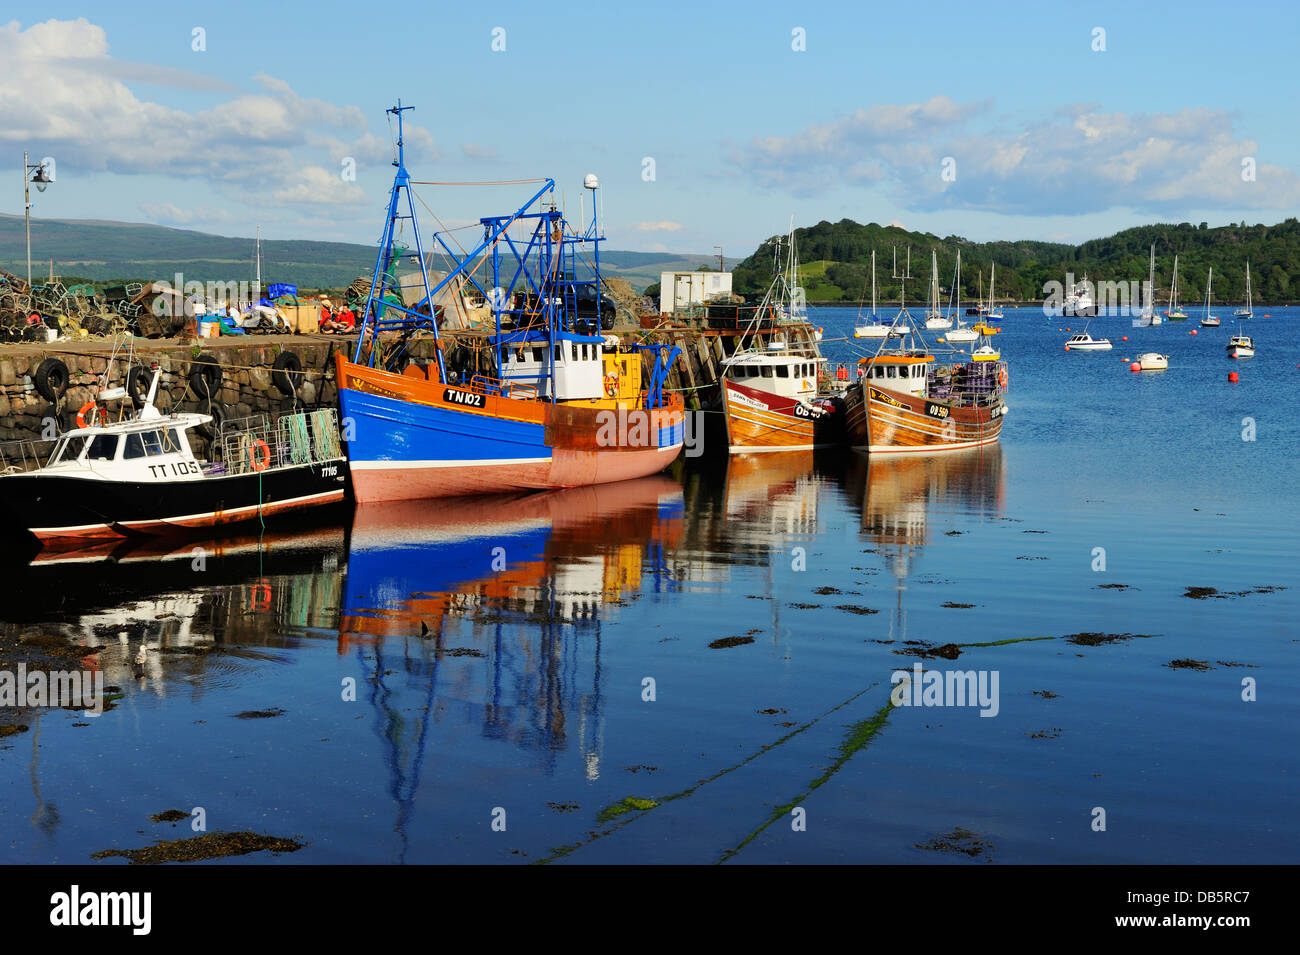 Colourful fishing boats in Tobermory harbour, Island of Mull, Scotland - Stock Image